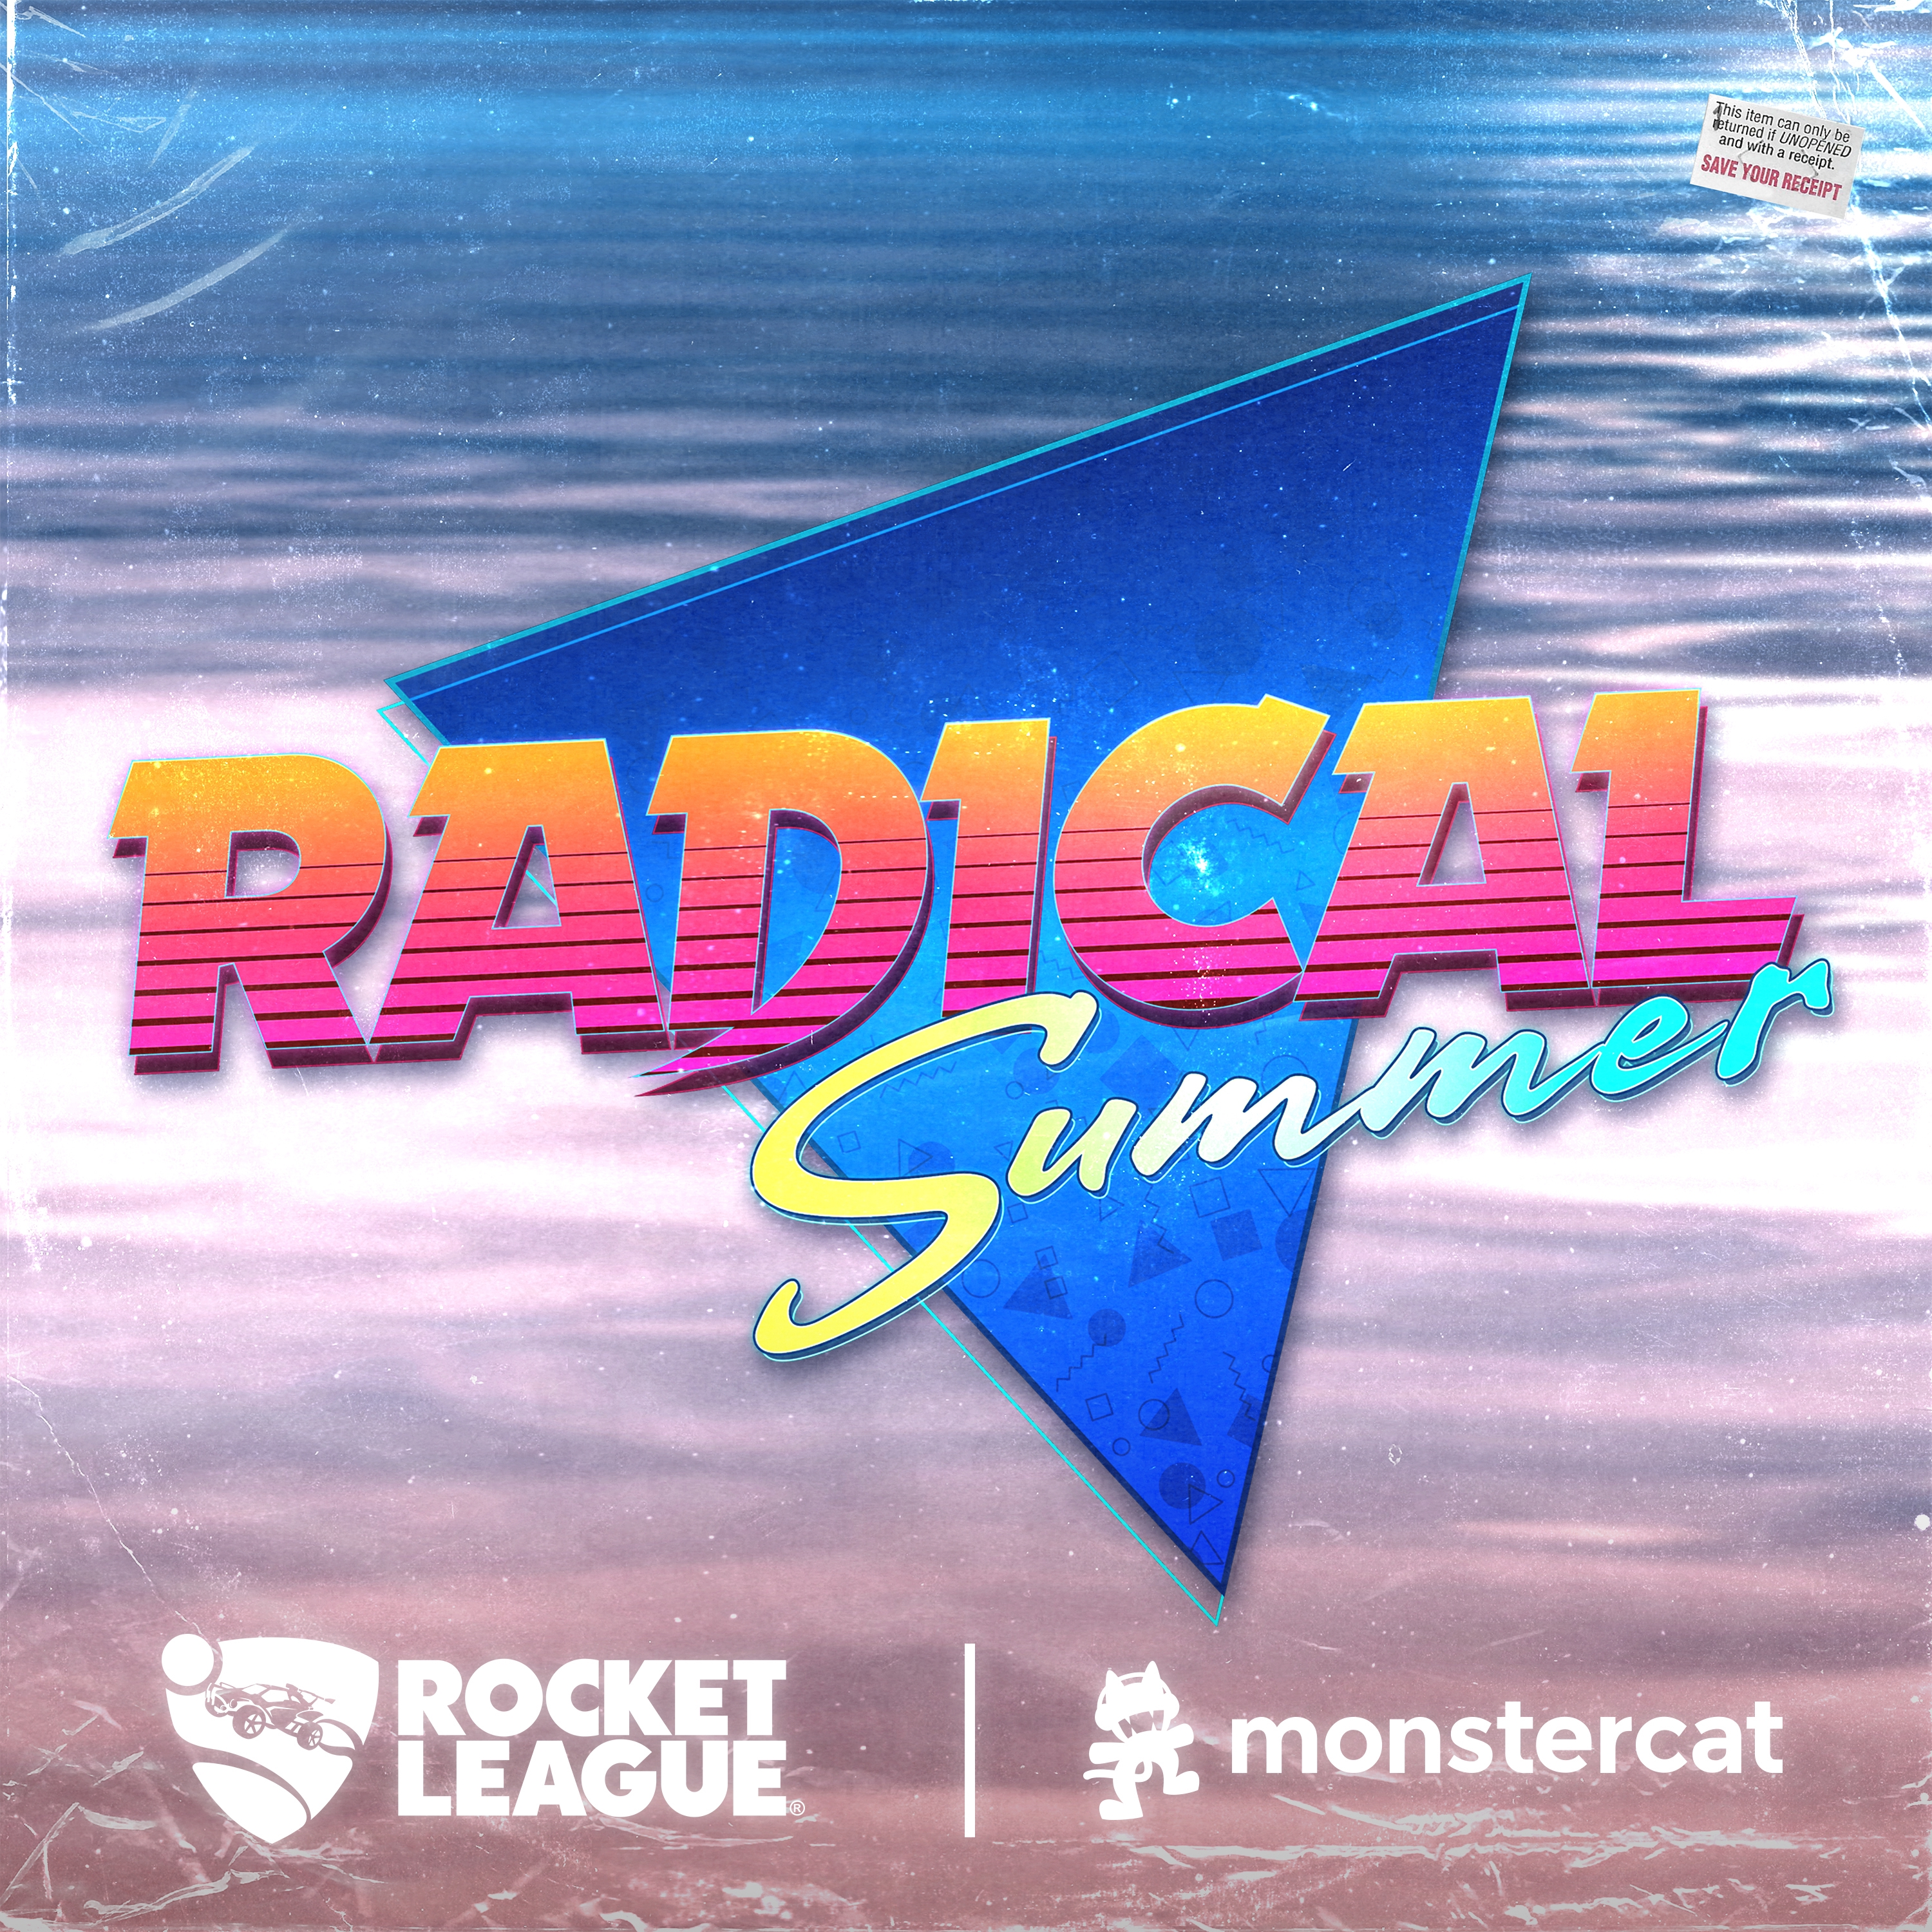 Rocket League x Monstercat - Radical Summer